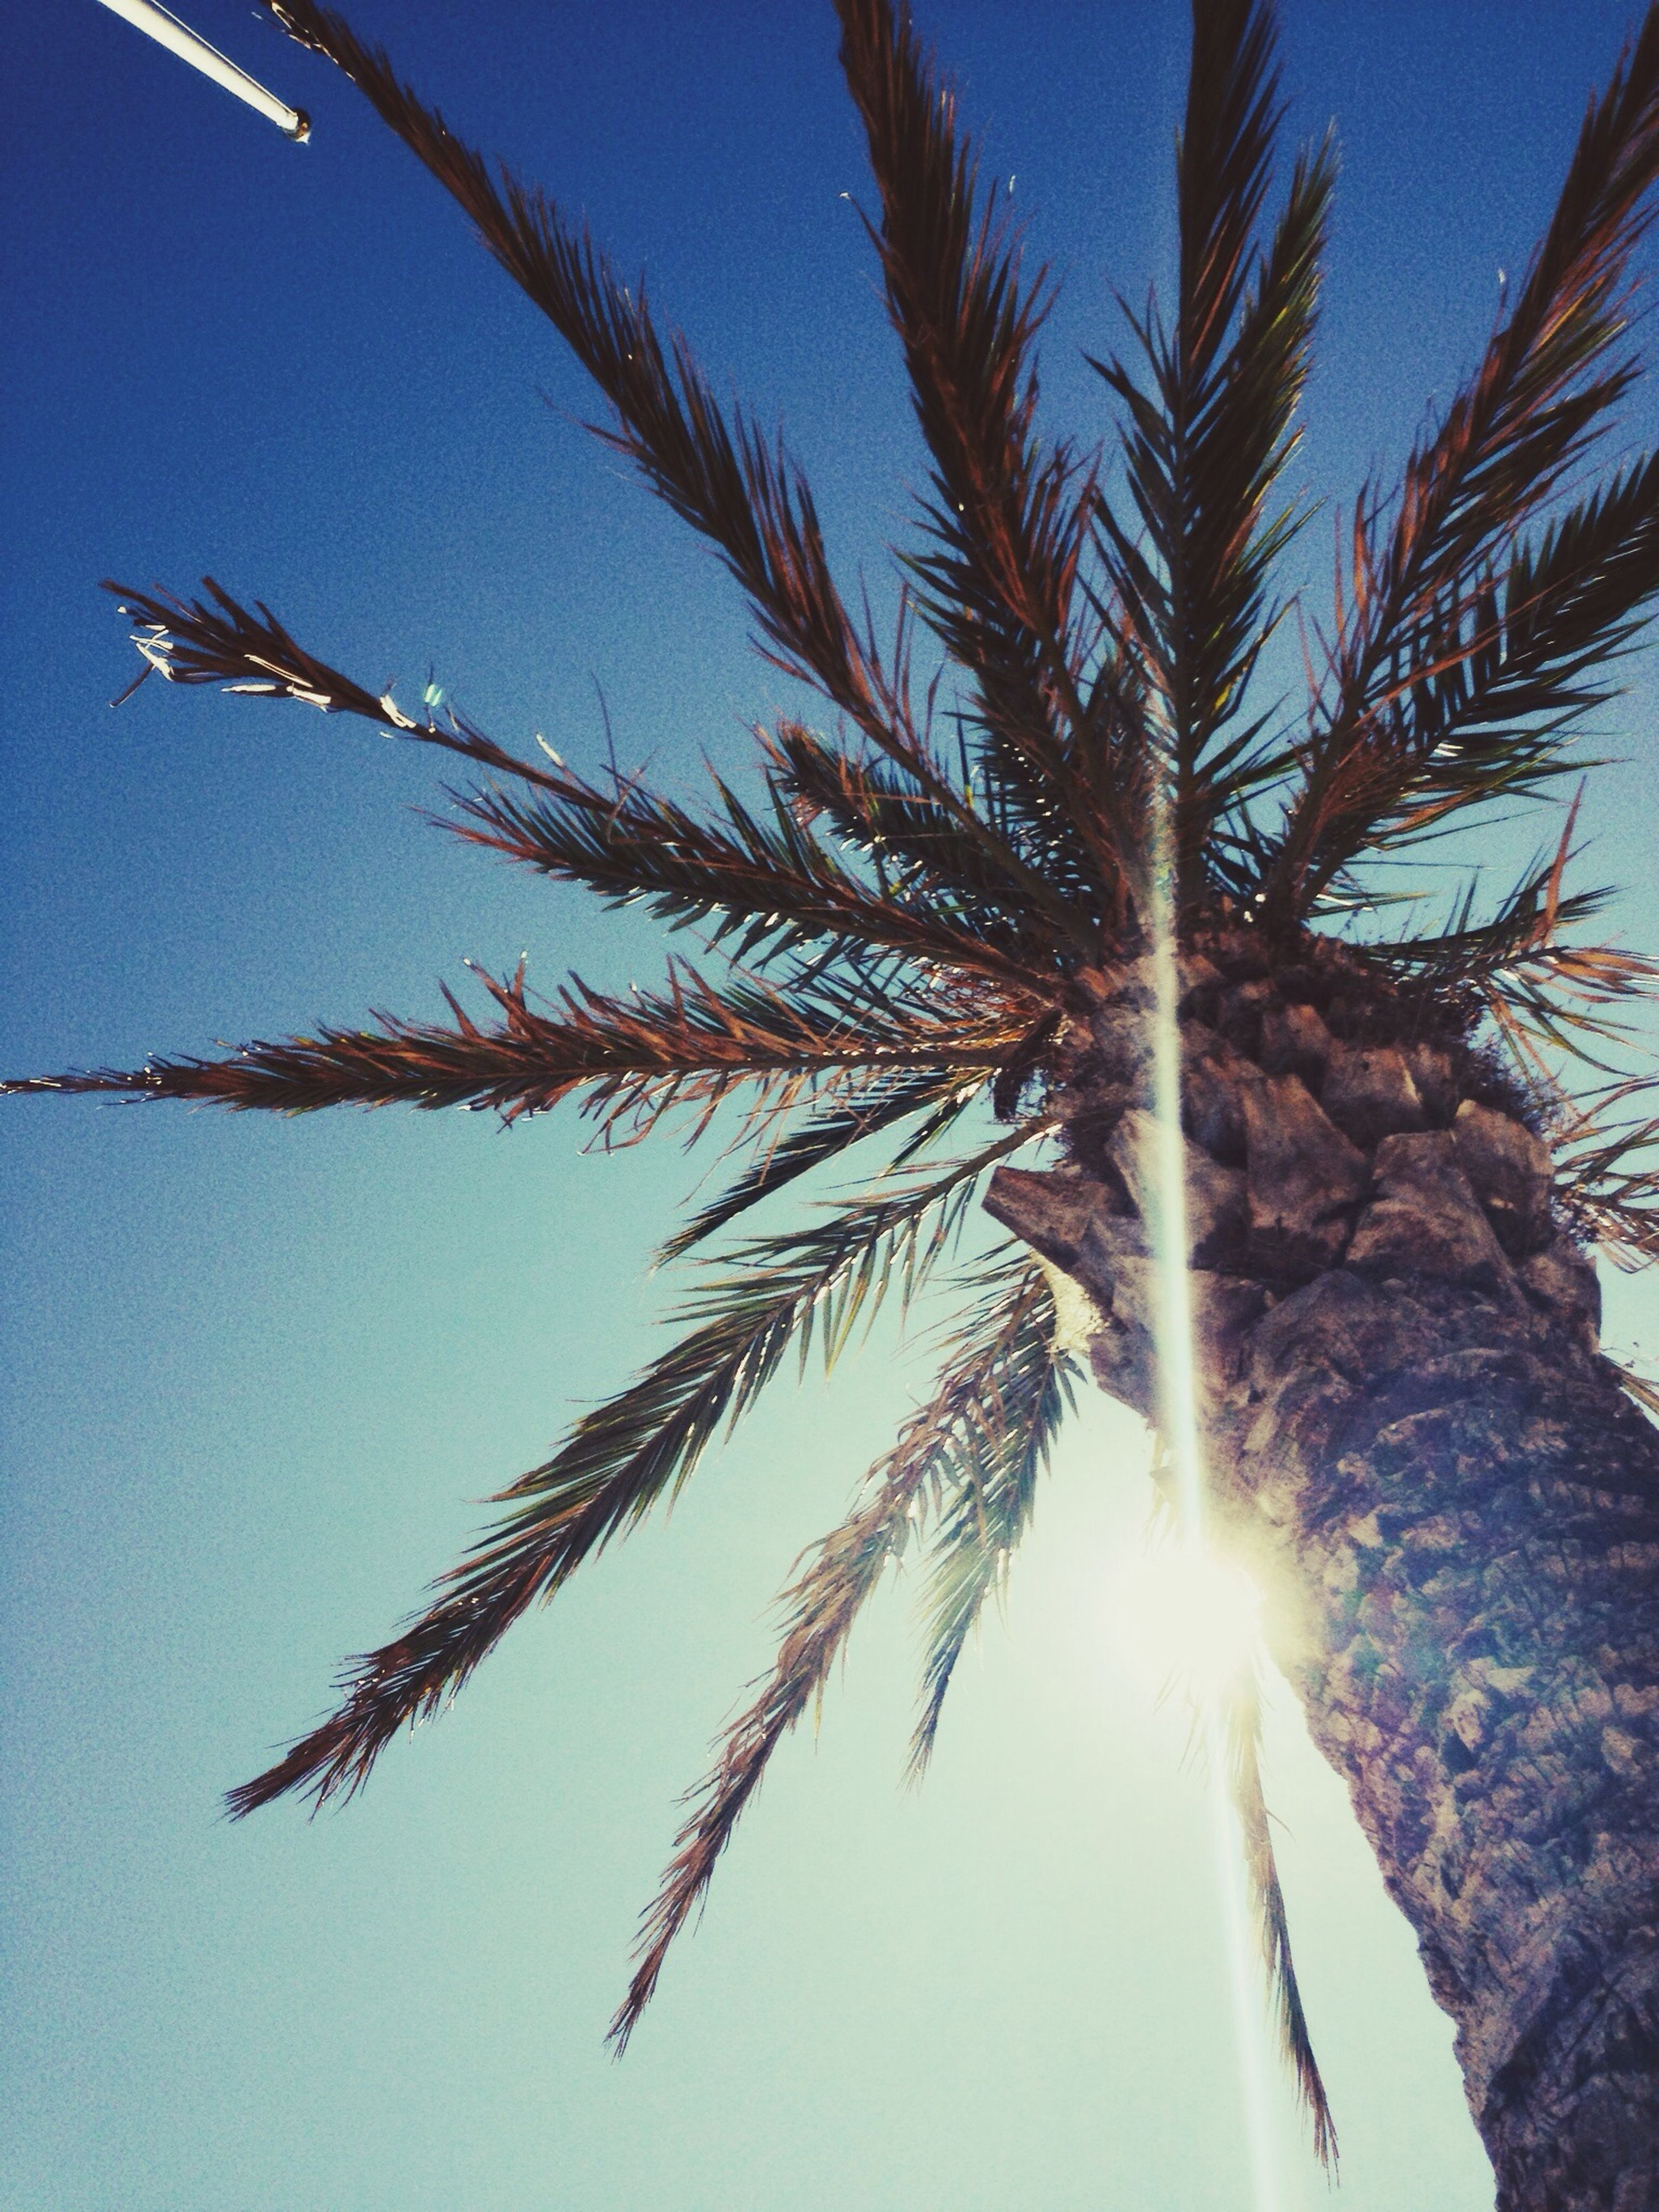 low angle view, clear sky, growth, sun, sunlight, tree, nature, sky, blue, beauty in nature, sunbeam, tranquility, branch, lens flare, outdoors, day, palm tree, no people, close-up, sunny